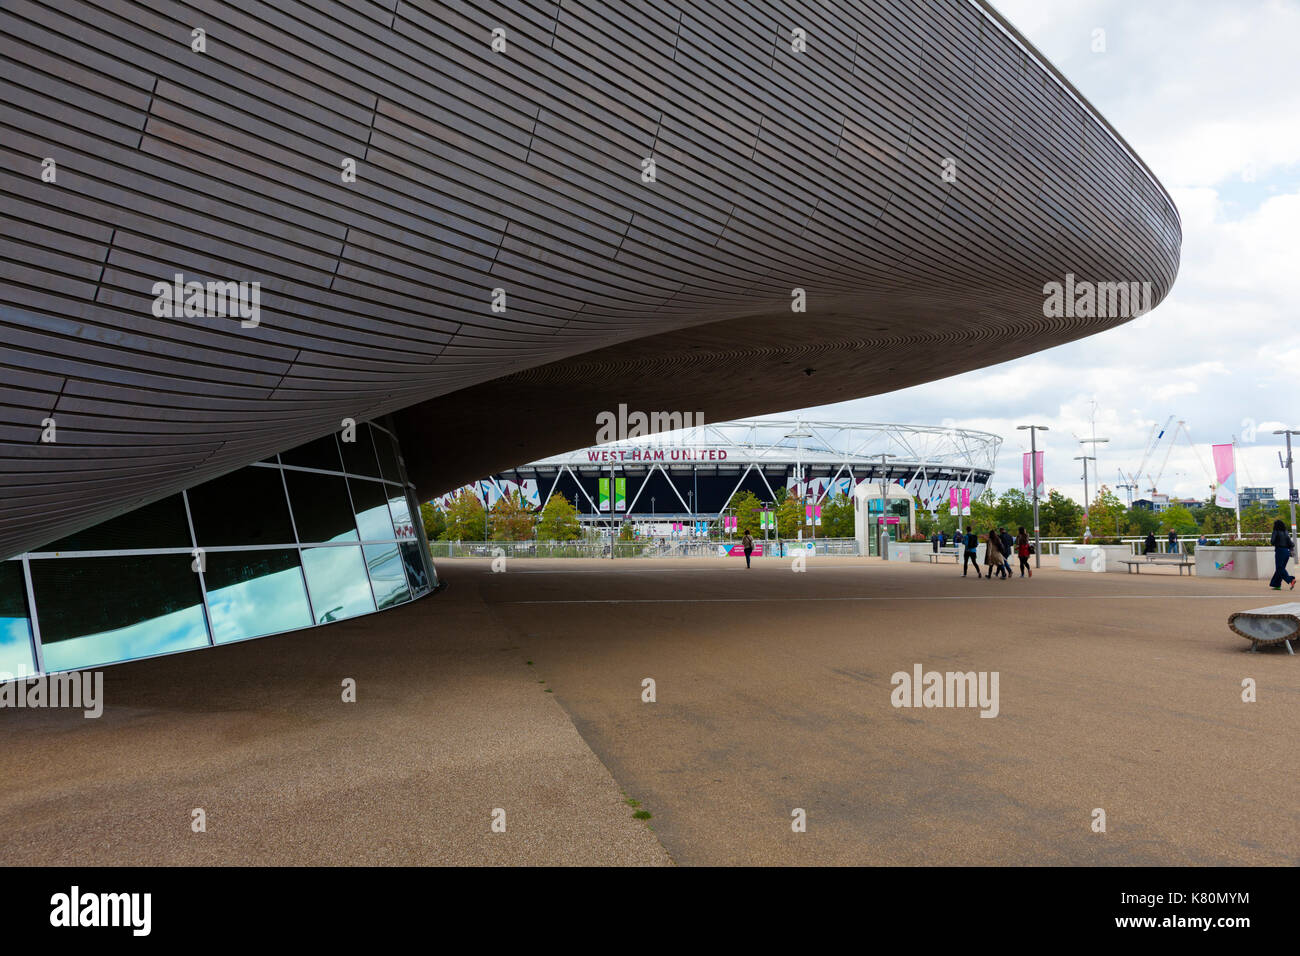 Olympic swimming pool olympic stadium stock photos - Queen elizabeth olympic park swimming pool ...